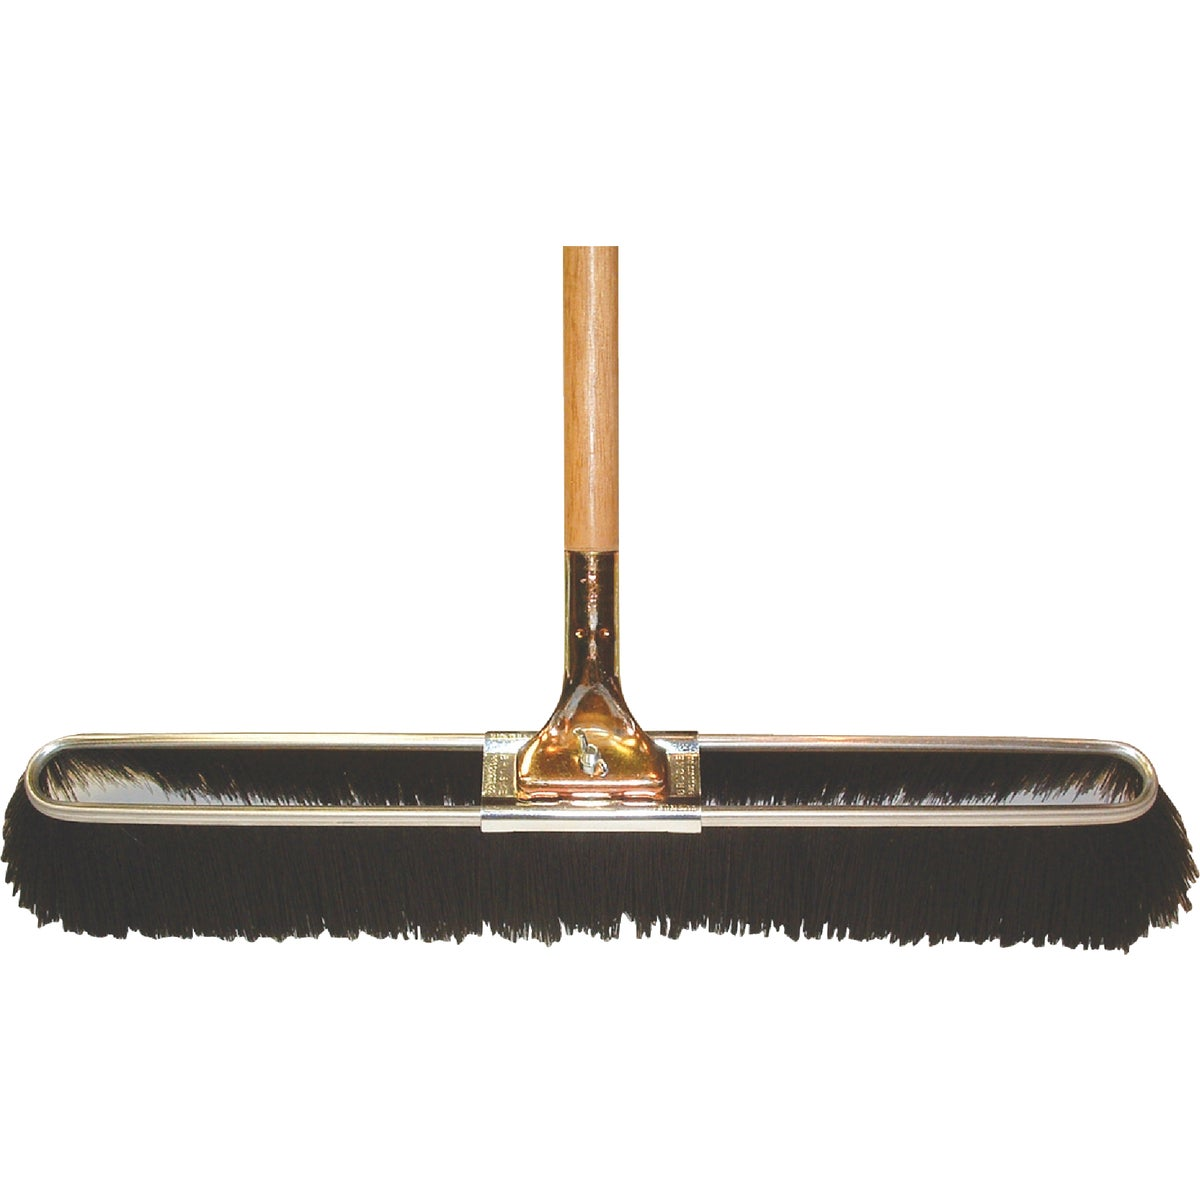 "23"" MEDIUM SWEEP BROOM - 2154-CW-4 by Bruske Products"